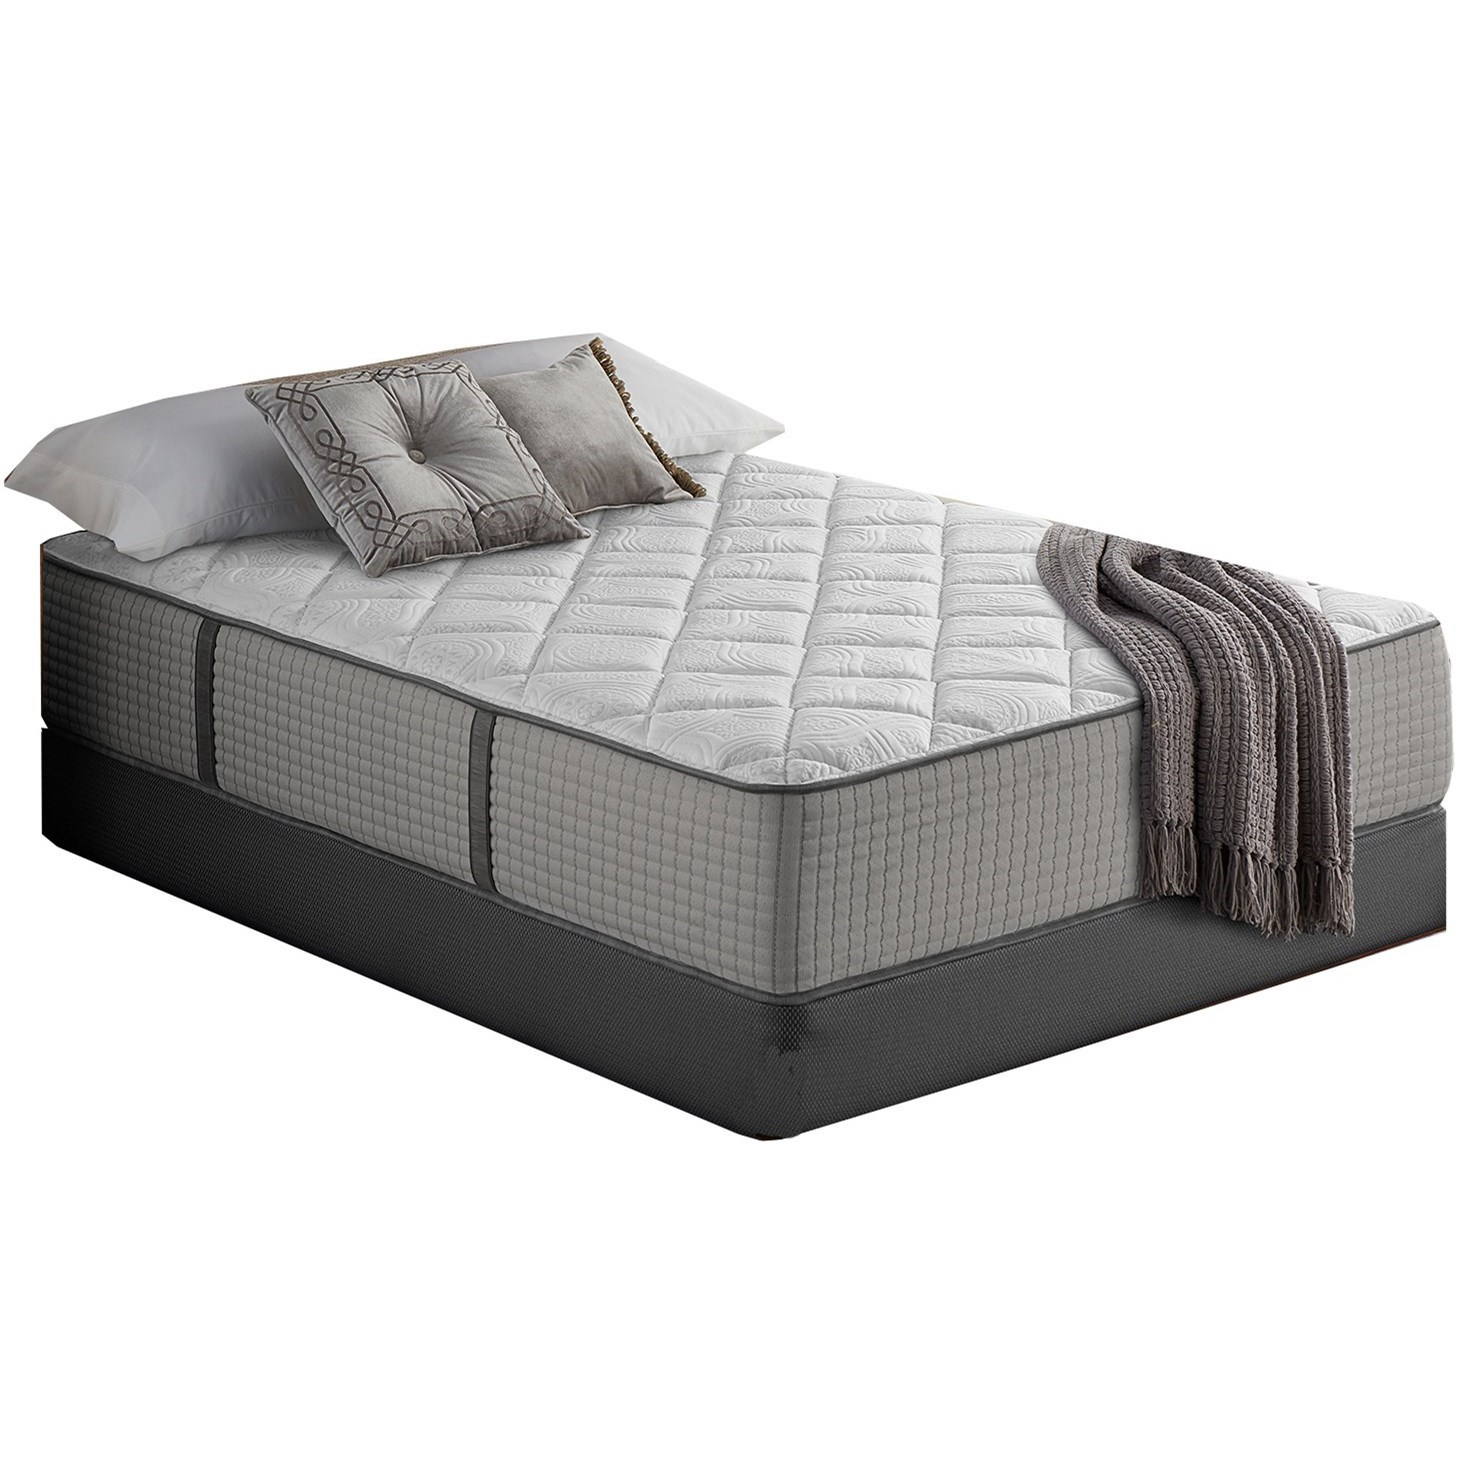 "King 13"" Hybrid Mattress Set"